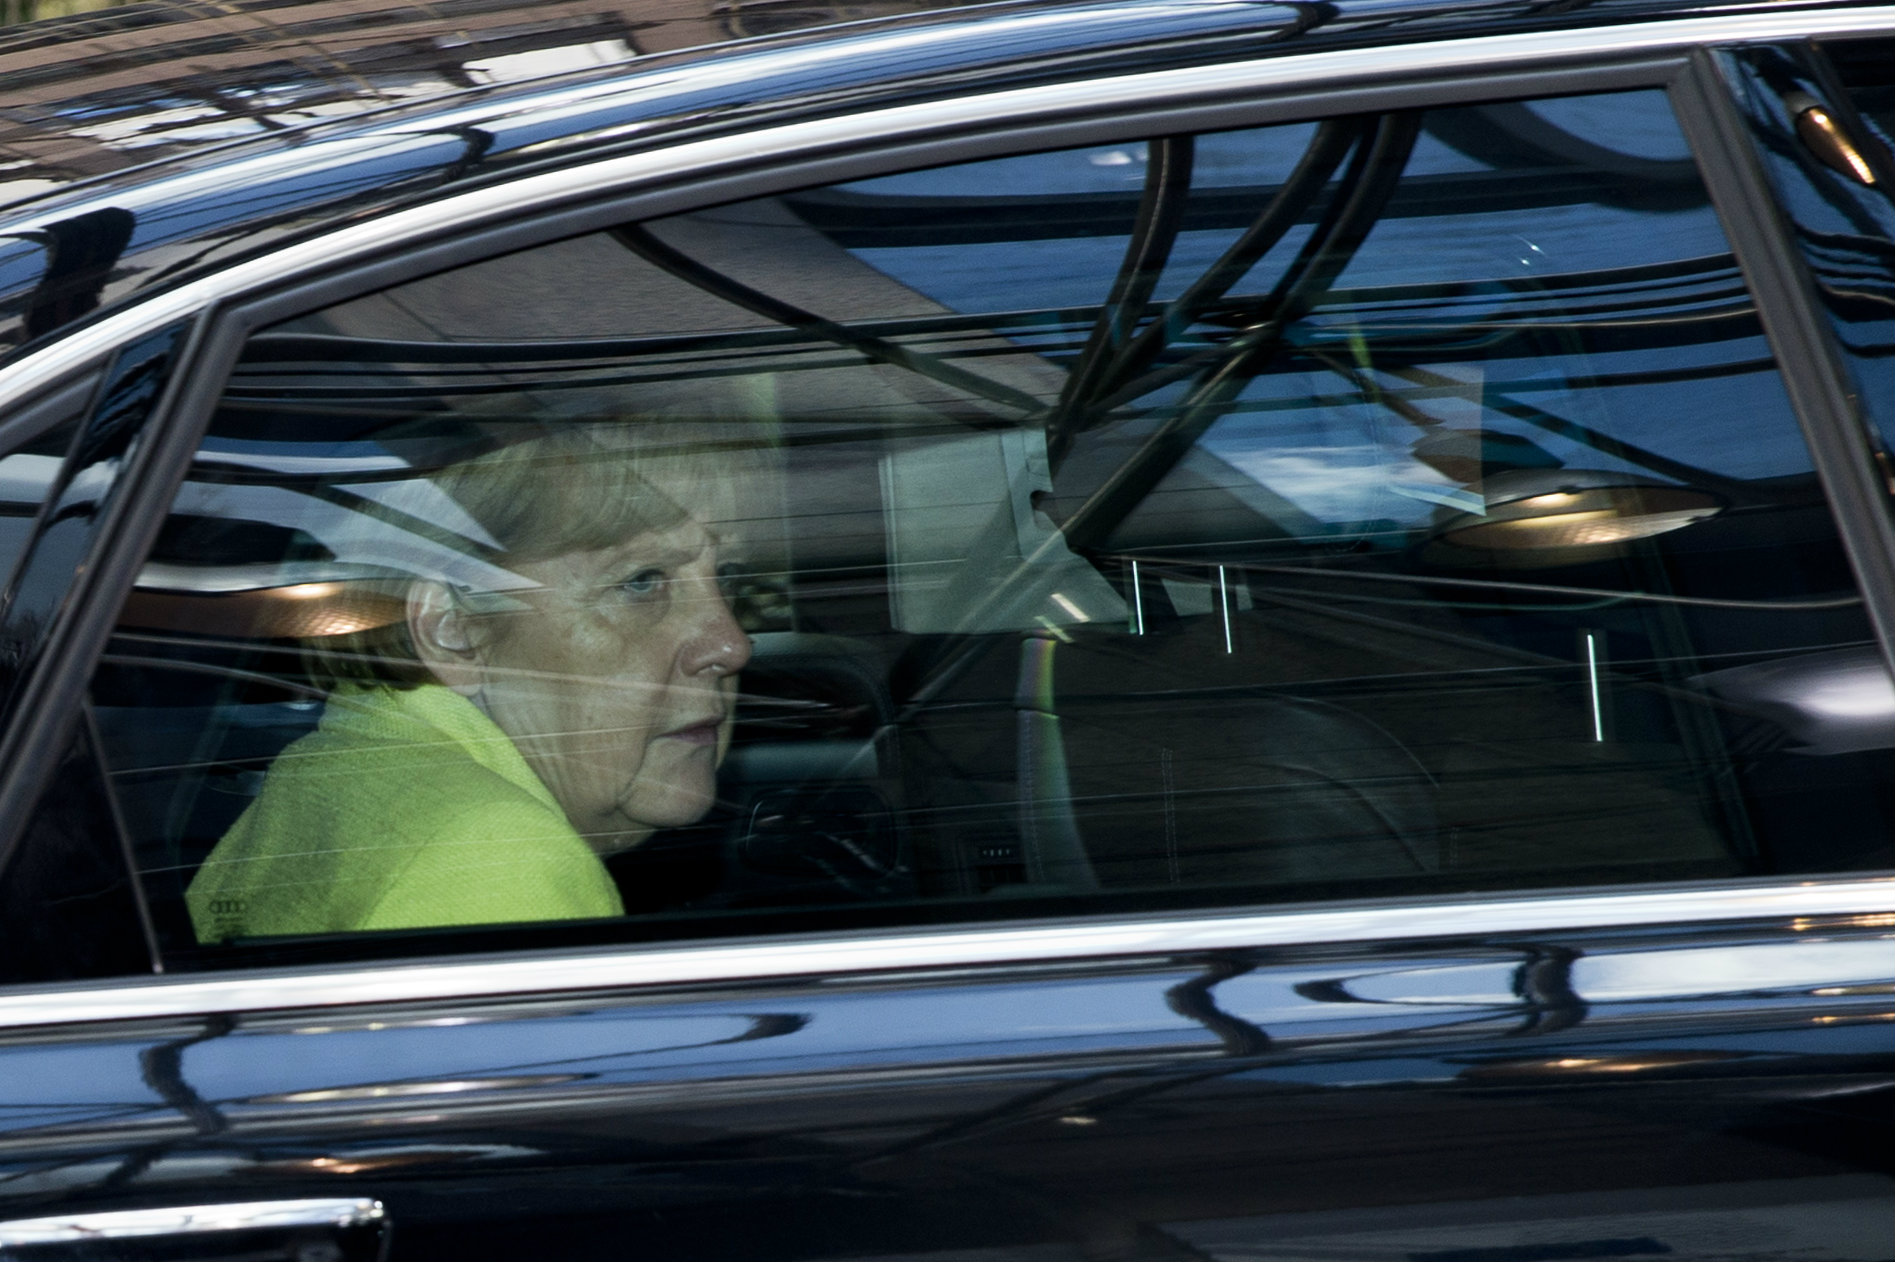 Merkel arrives in Brussels for a meeting with top EU leaders. 16 July 2014 [The Council of the European Union]